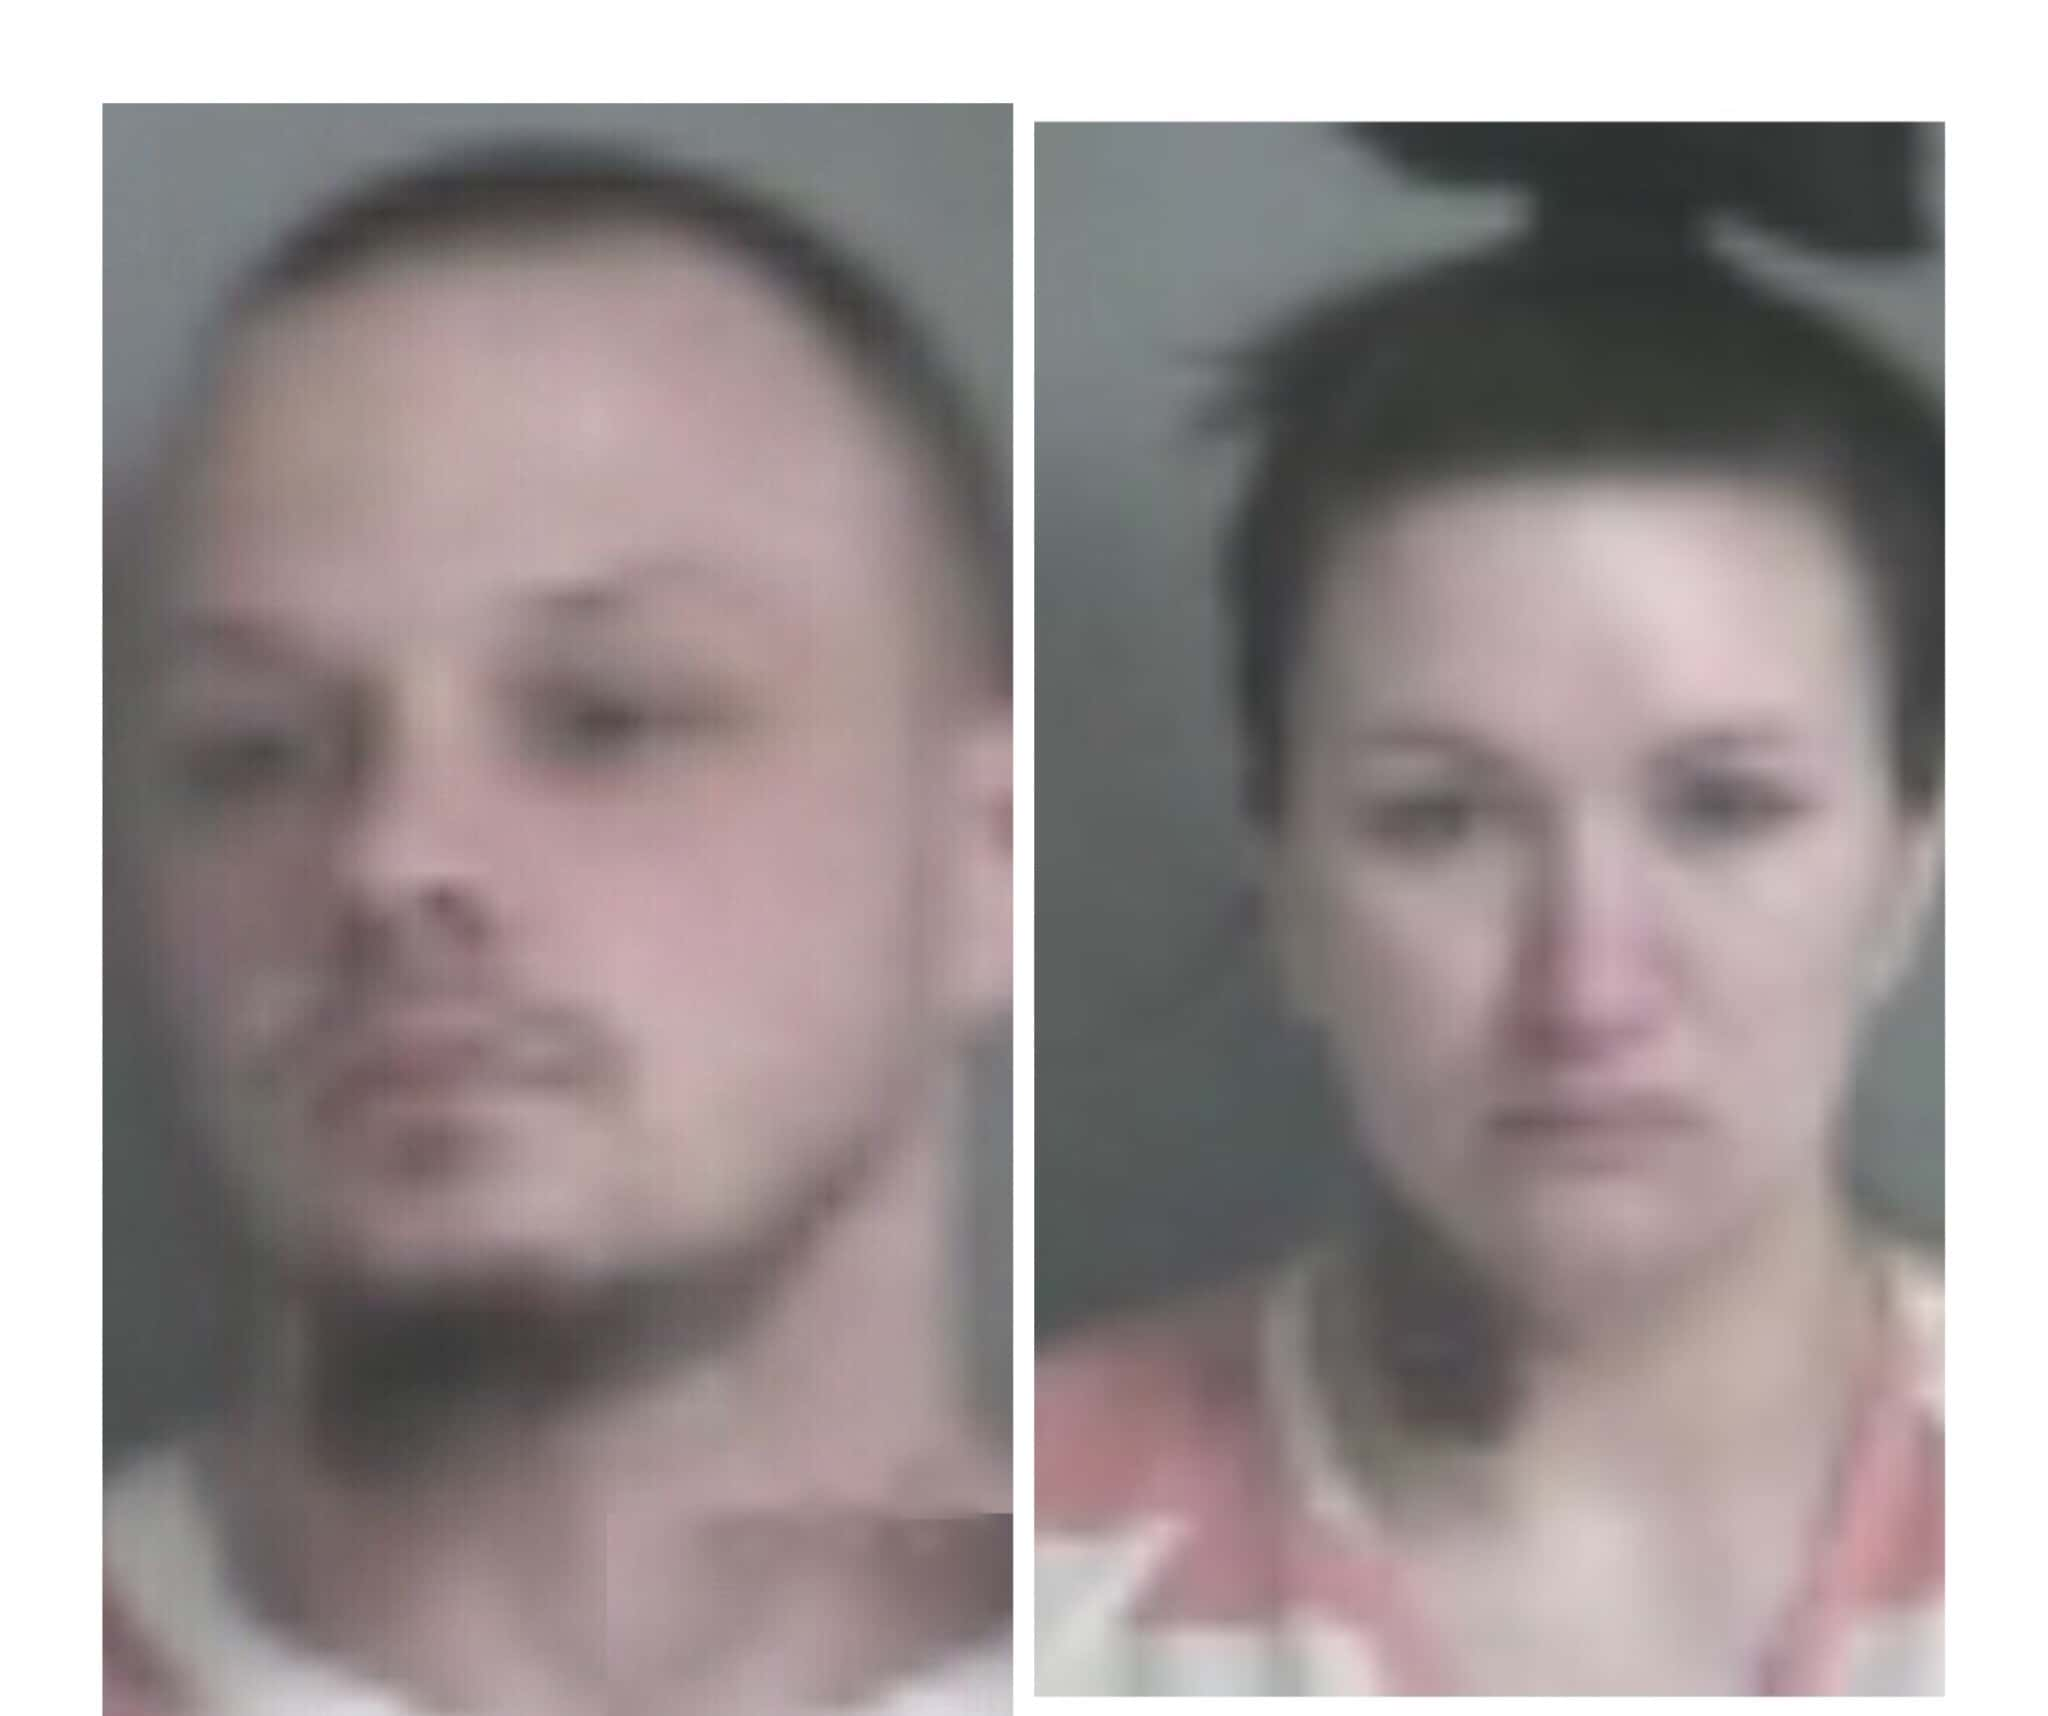 Earlville Pair Arrested on Heroin Charges | WGLC